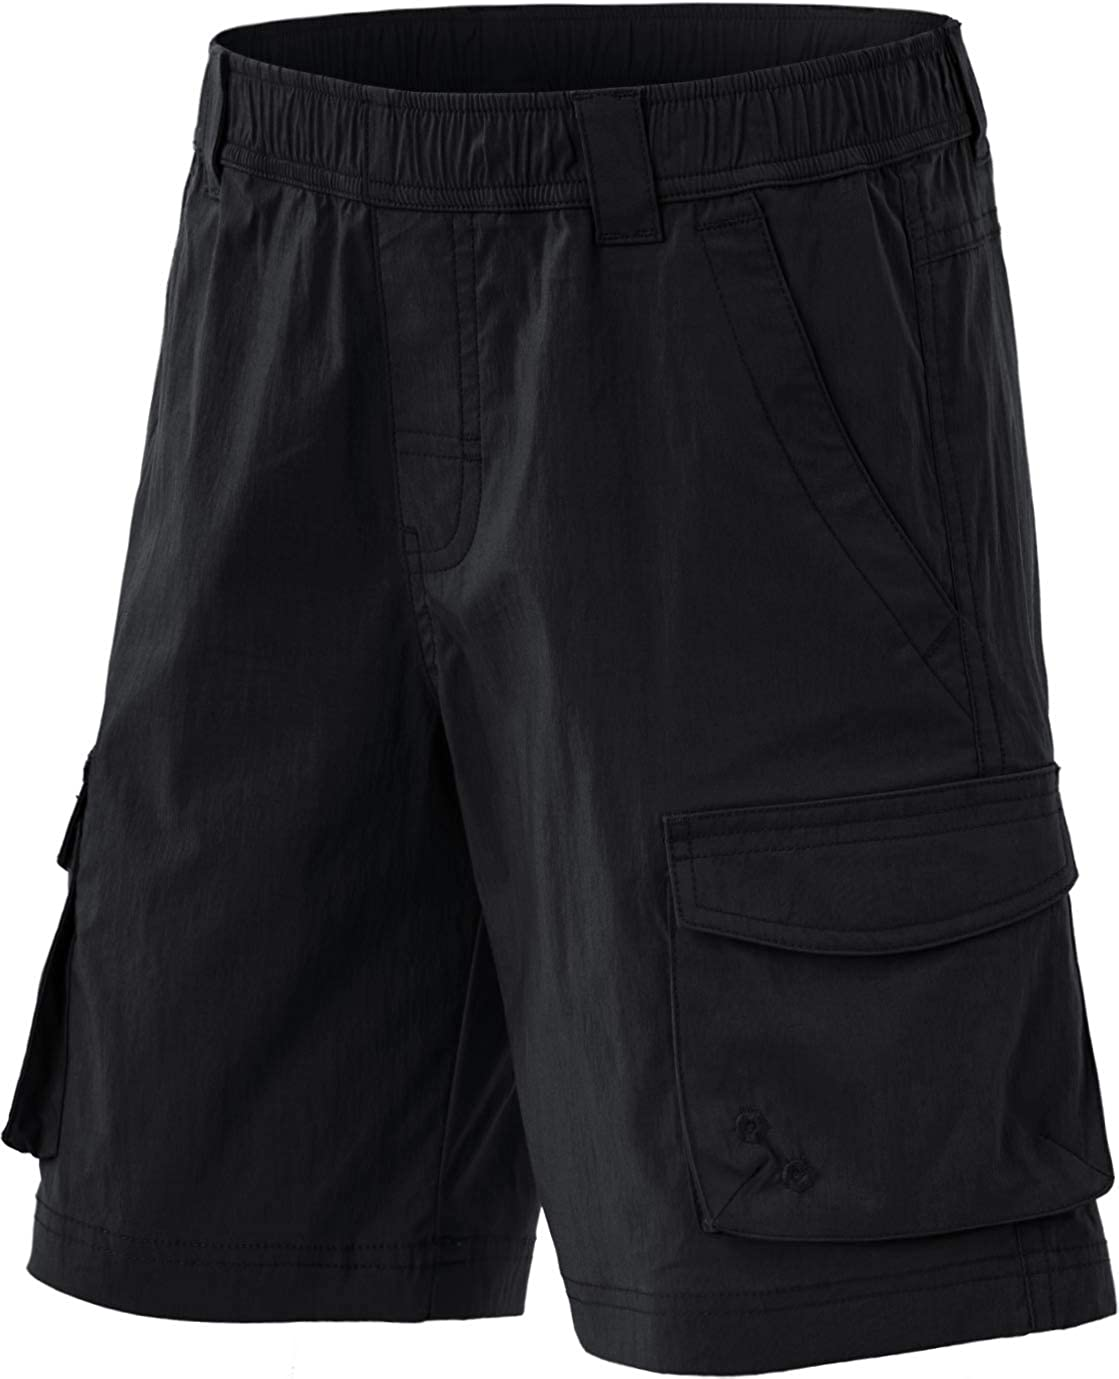 CQR Kids Youth Pull on Cargo Special sale Max 58% OFF item Shor Outdoor Shorts Hiking Camping